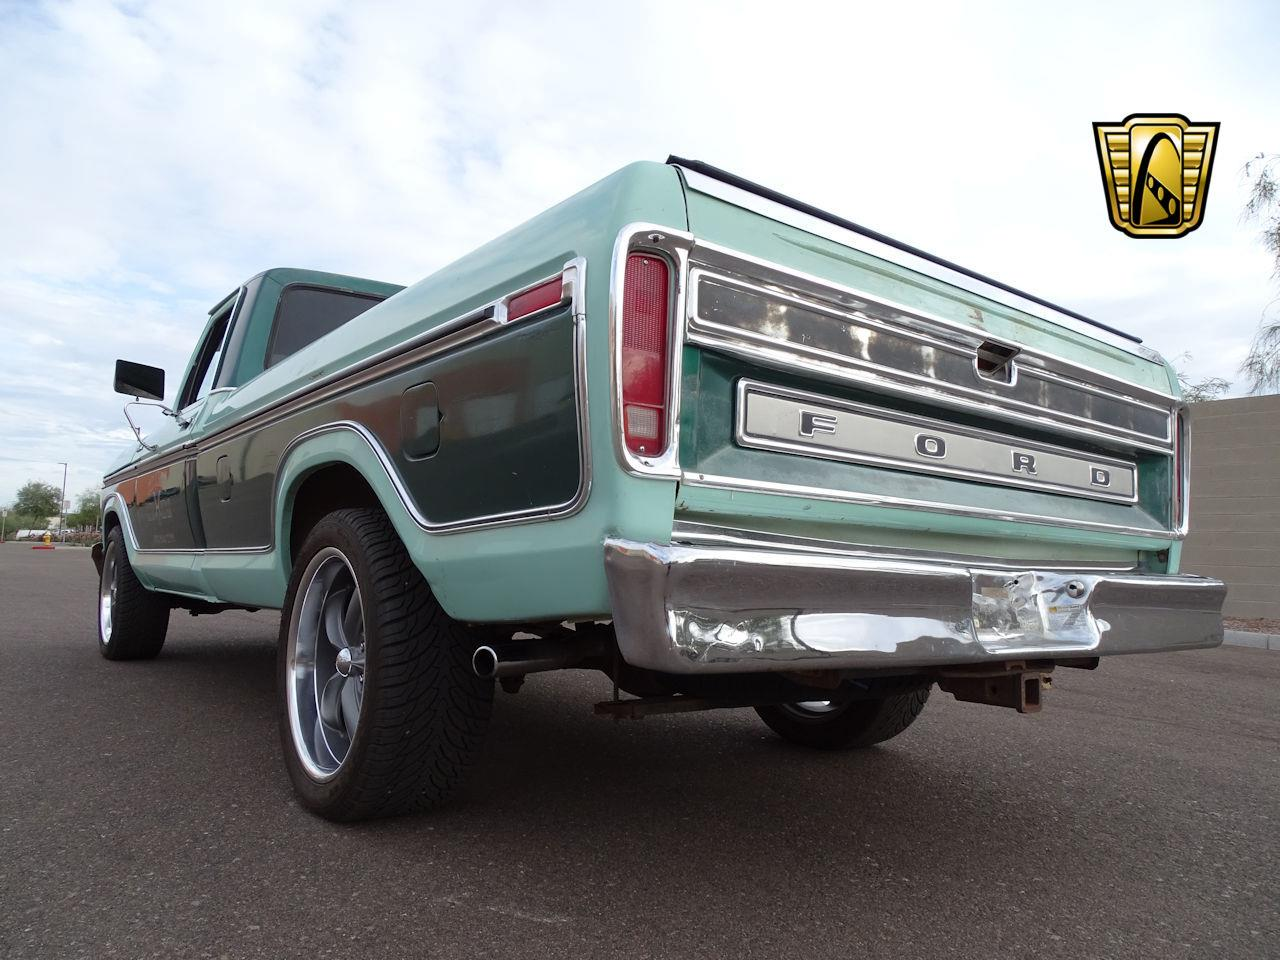 Large Picture of 1978 Ford F150 located in Deer Valley Arizona - $17,995.00 Offered by Gateway Classic Cars - Scottsdale - MEMV